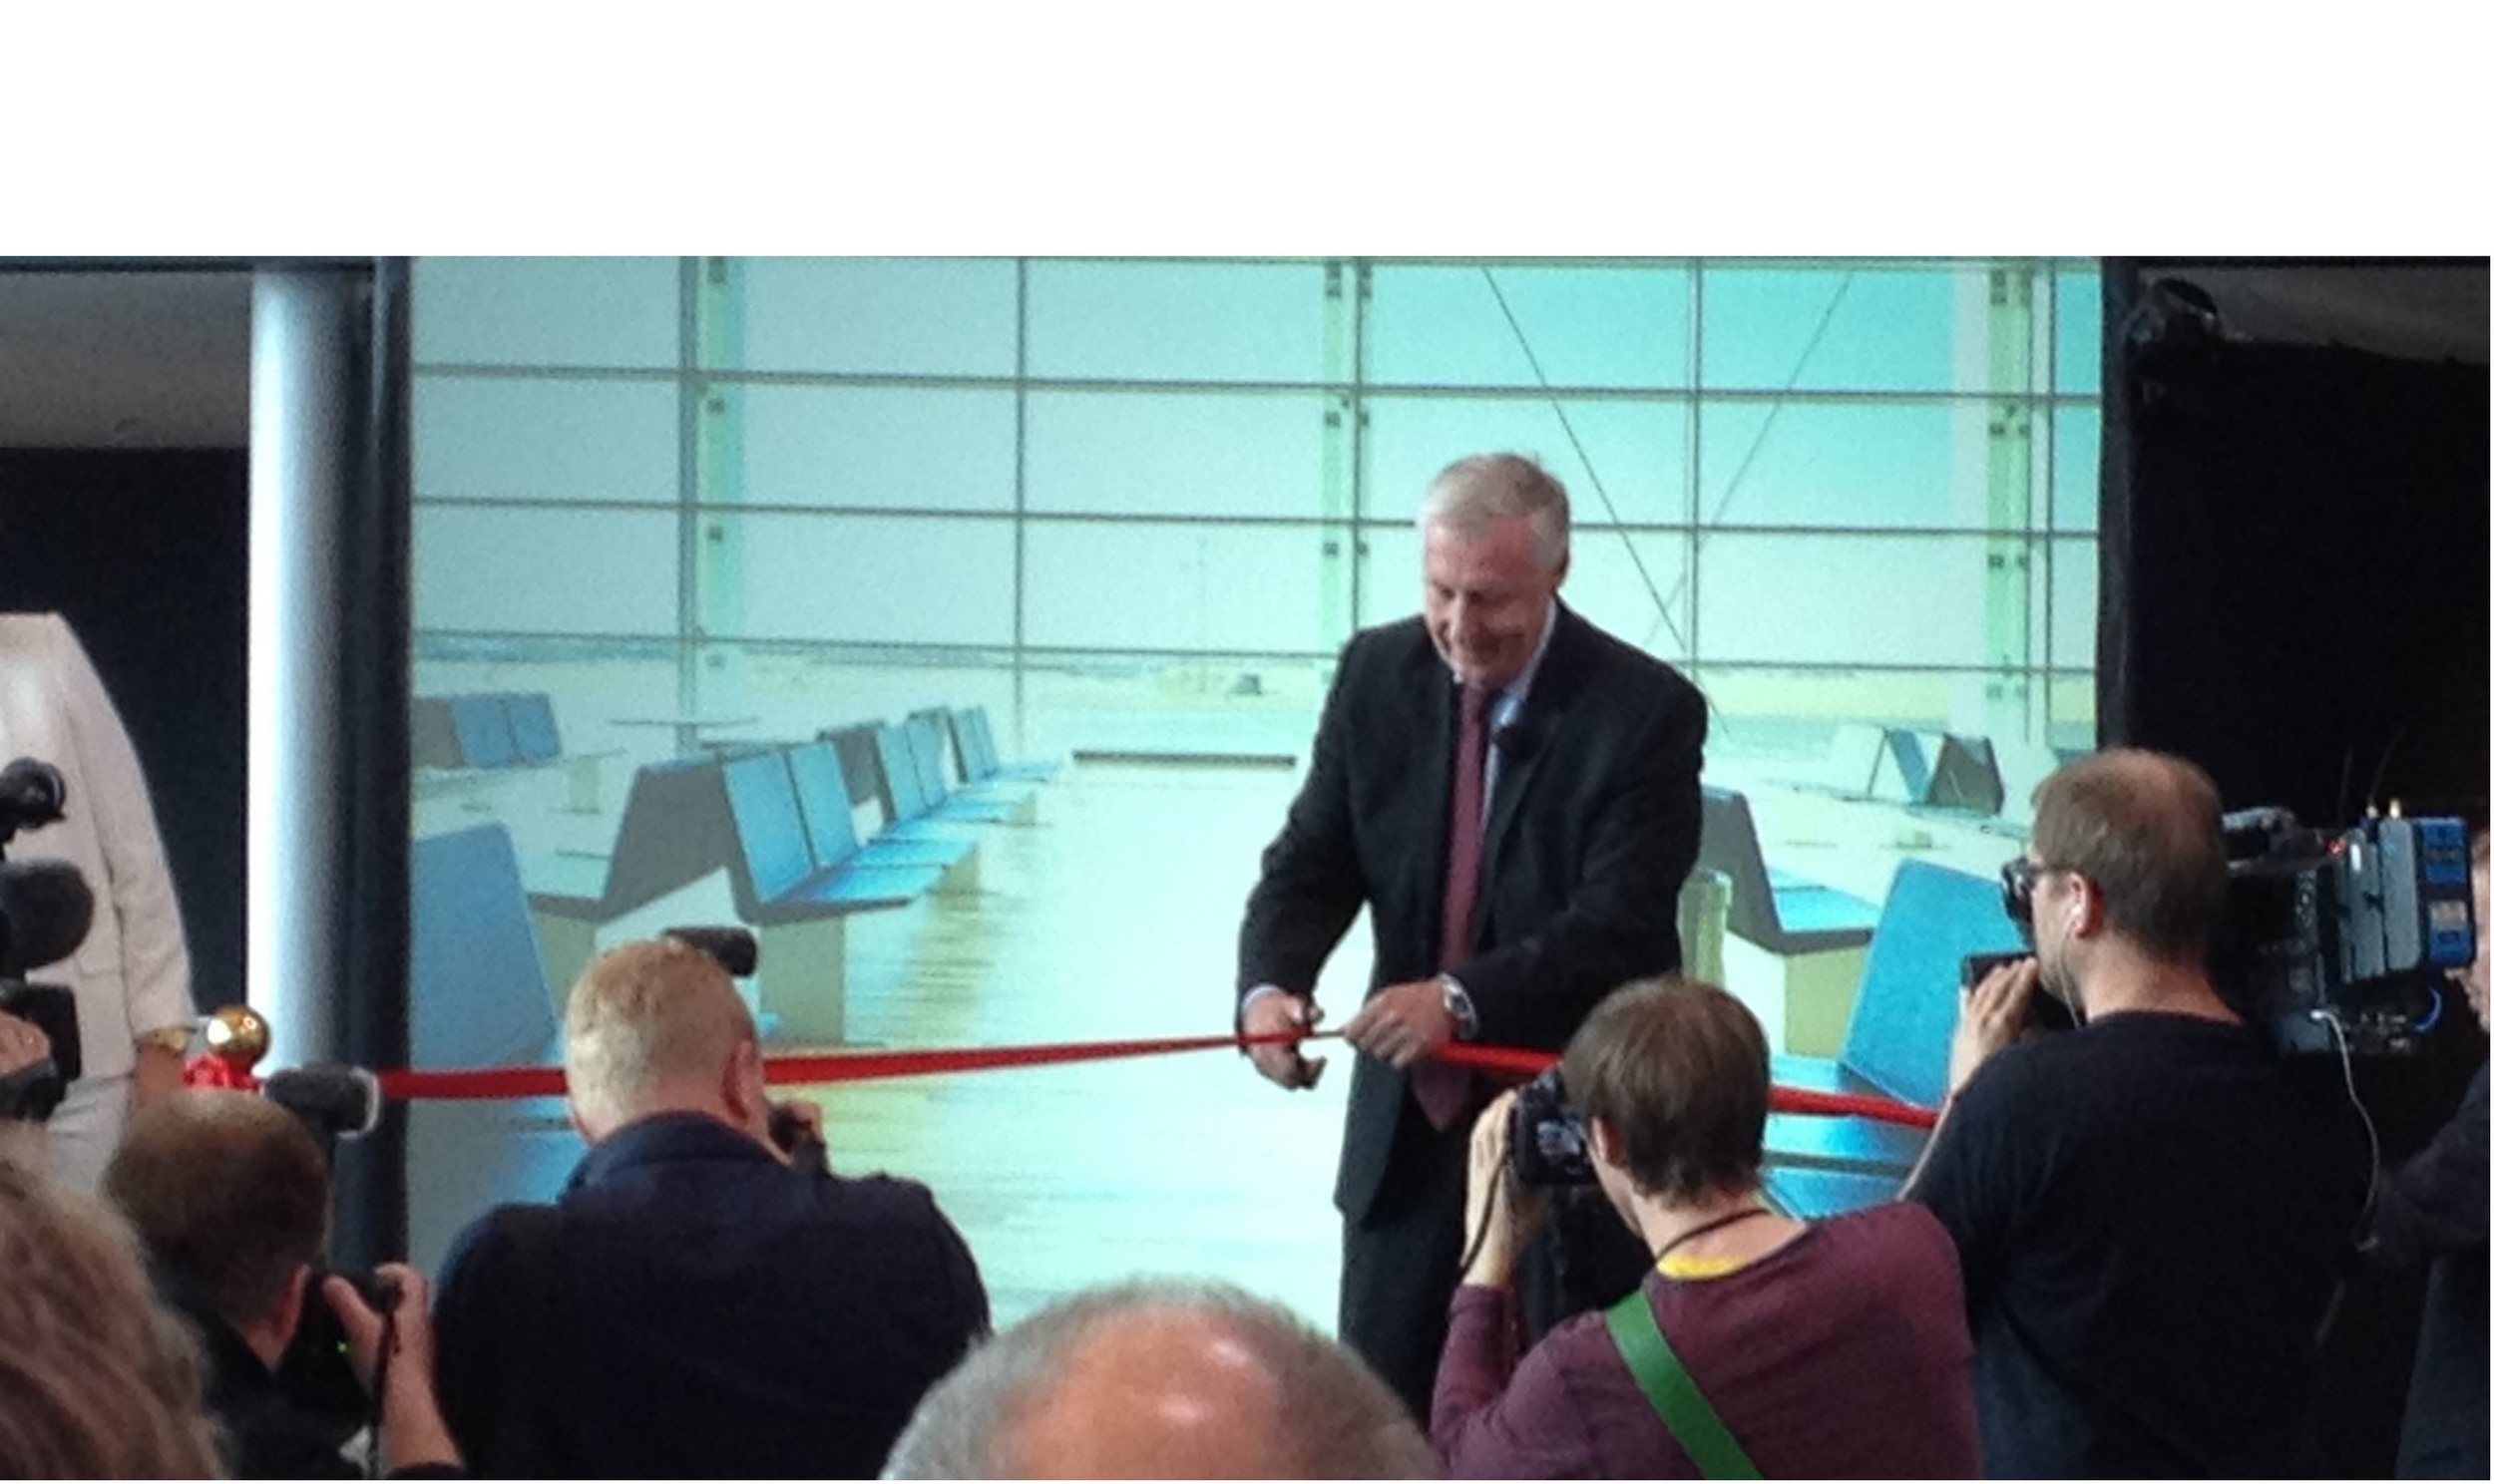 The official opening of the renovation and expansion of Aalborg Airport May 29th 2013. The Minister of Transport, Henrik Dam Kristensen, cuts the red band.  Marcus Pedersen ApS has - in cooperation with Thorsøe & Fasting and GPD - designed and developed the new interior.